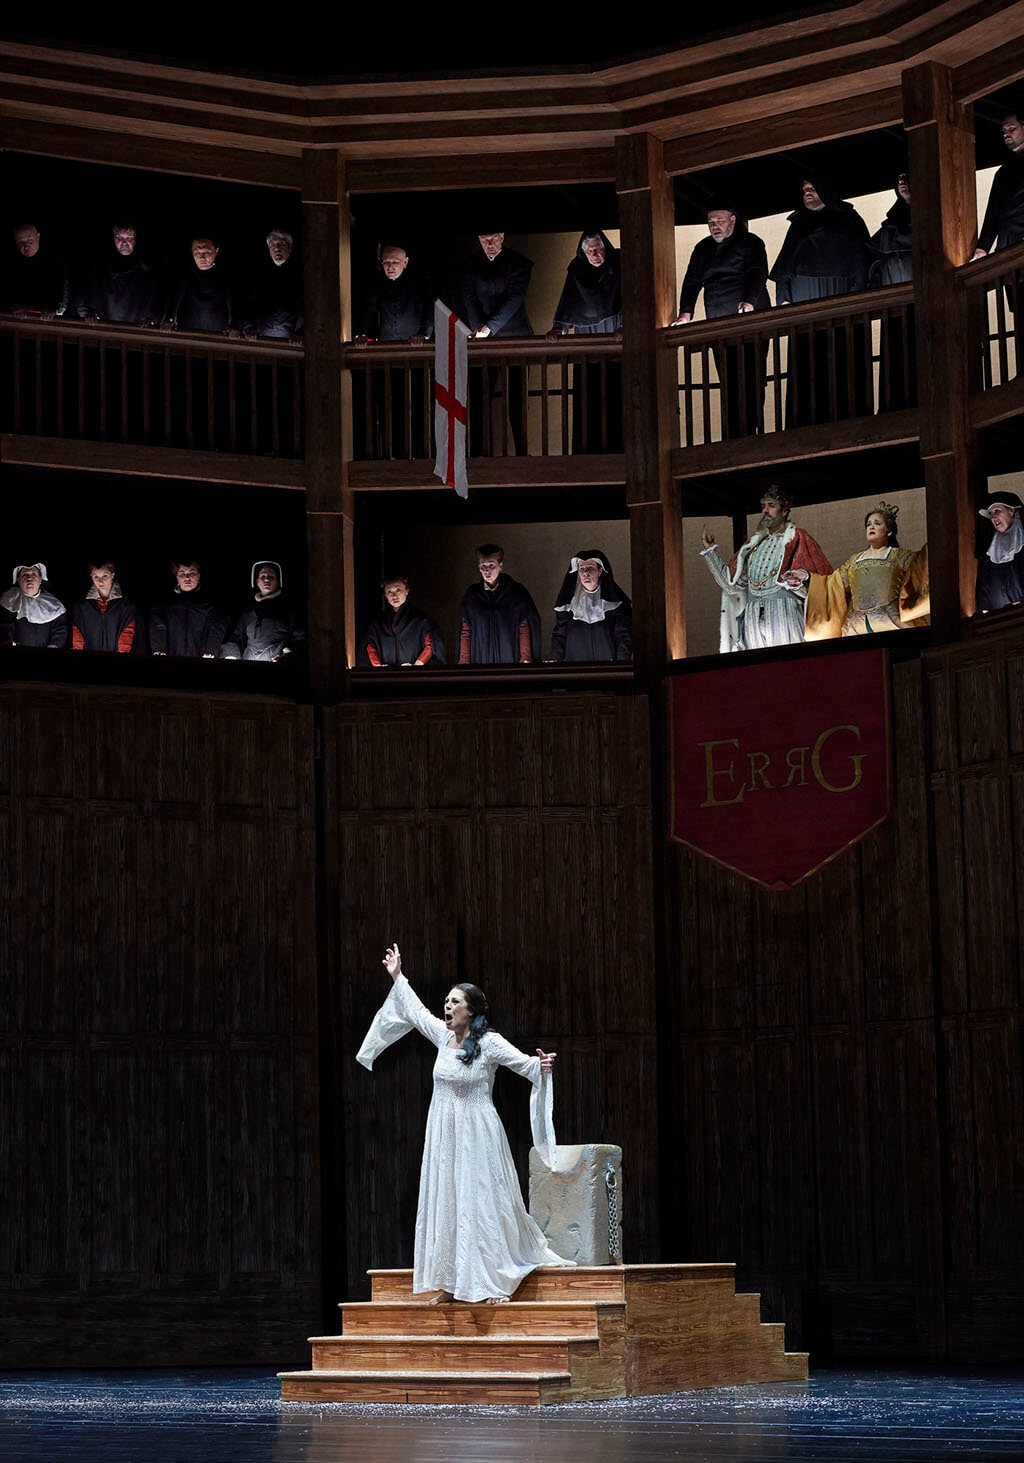 Sondra Radvanovsky as Anna Bolena (centre) with Christian Van Horn as Enrico VIII and Keri Alkema as Giovanna Seymour (above banner) (Photo: Michael Cooper)